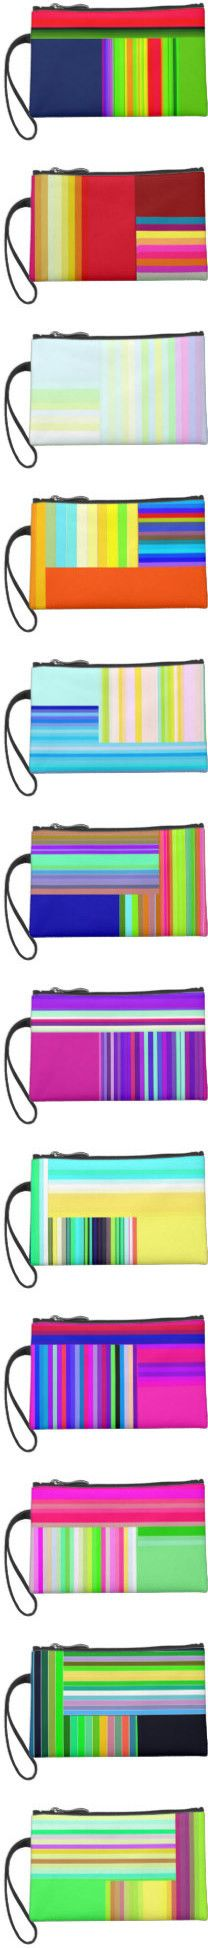 Re-Created Parquet Wristlets by Robert S. Lee by robertsleeart #Robert #S. #Lee #art #graphic #design #colors #bag #wristlet #purse #girls #women #style #fashion #accessory #for #her #gift #want #need #love #customizable